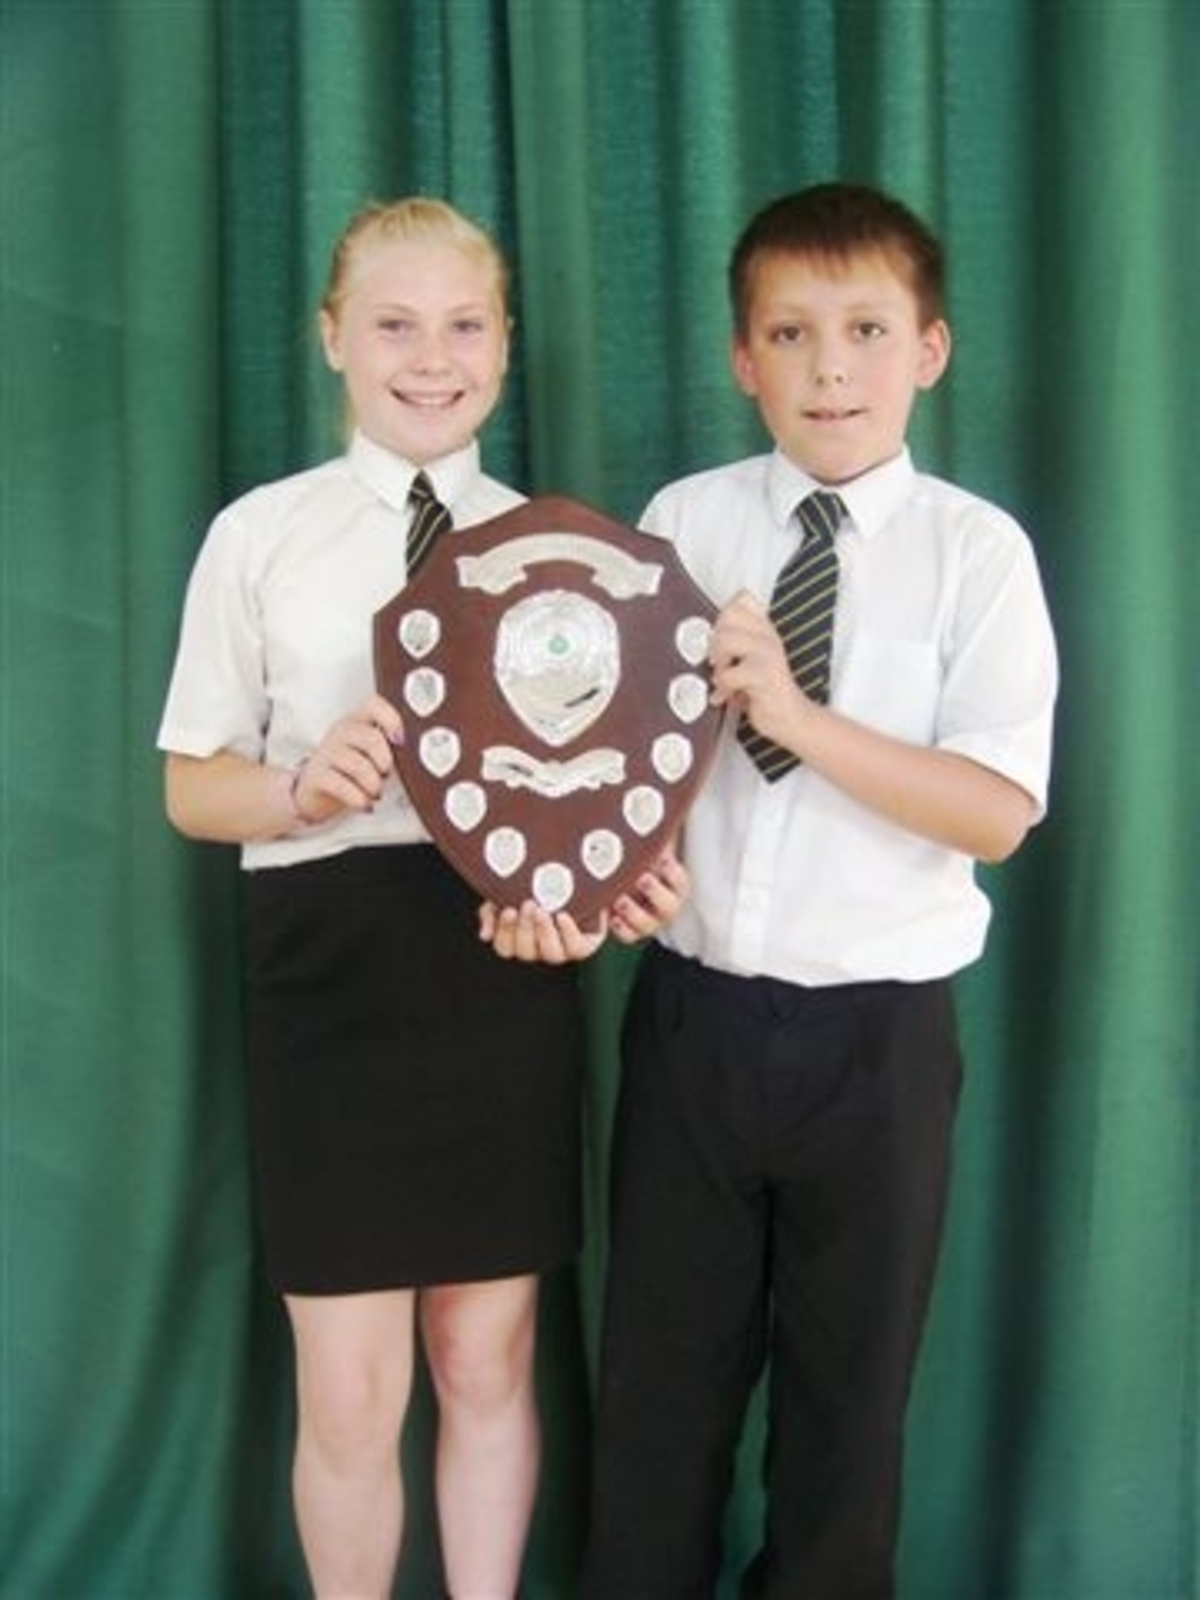 Inspirational youngsters: St Oswald's Primary School students Lucy Williams, 11 and Jordan Joslin, 10, hold the young citizen's challenge shield.